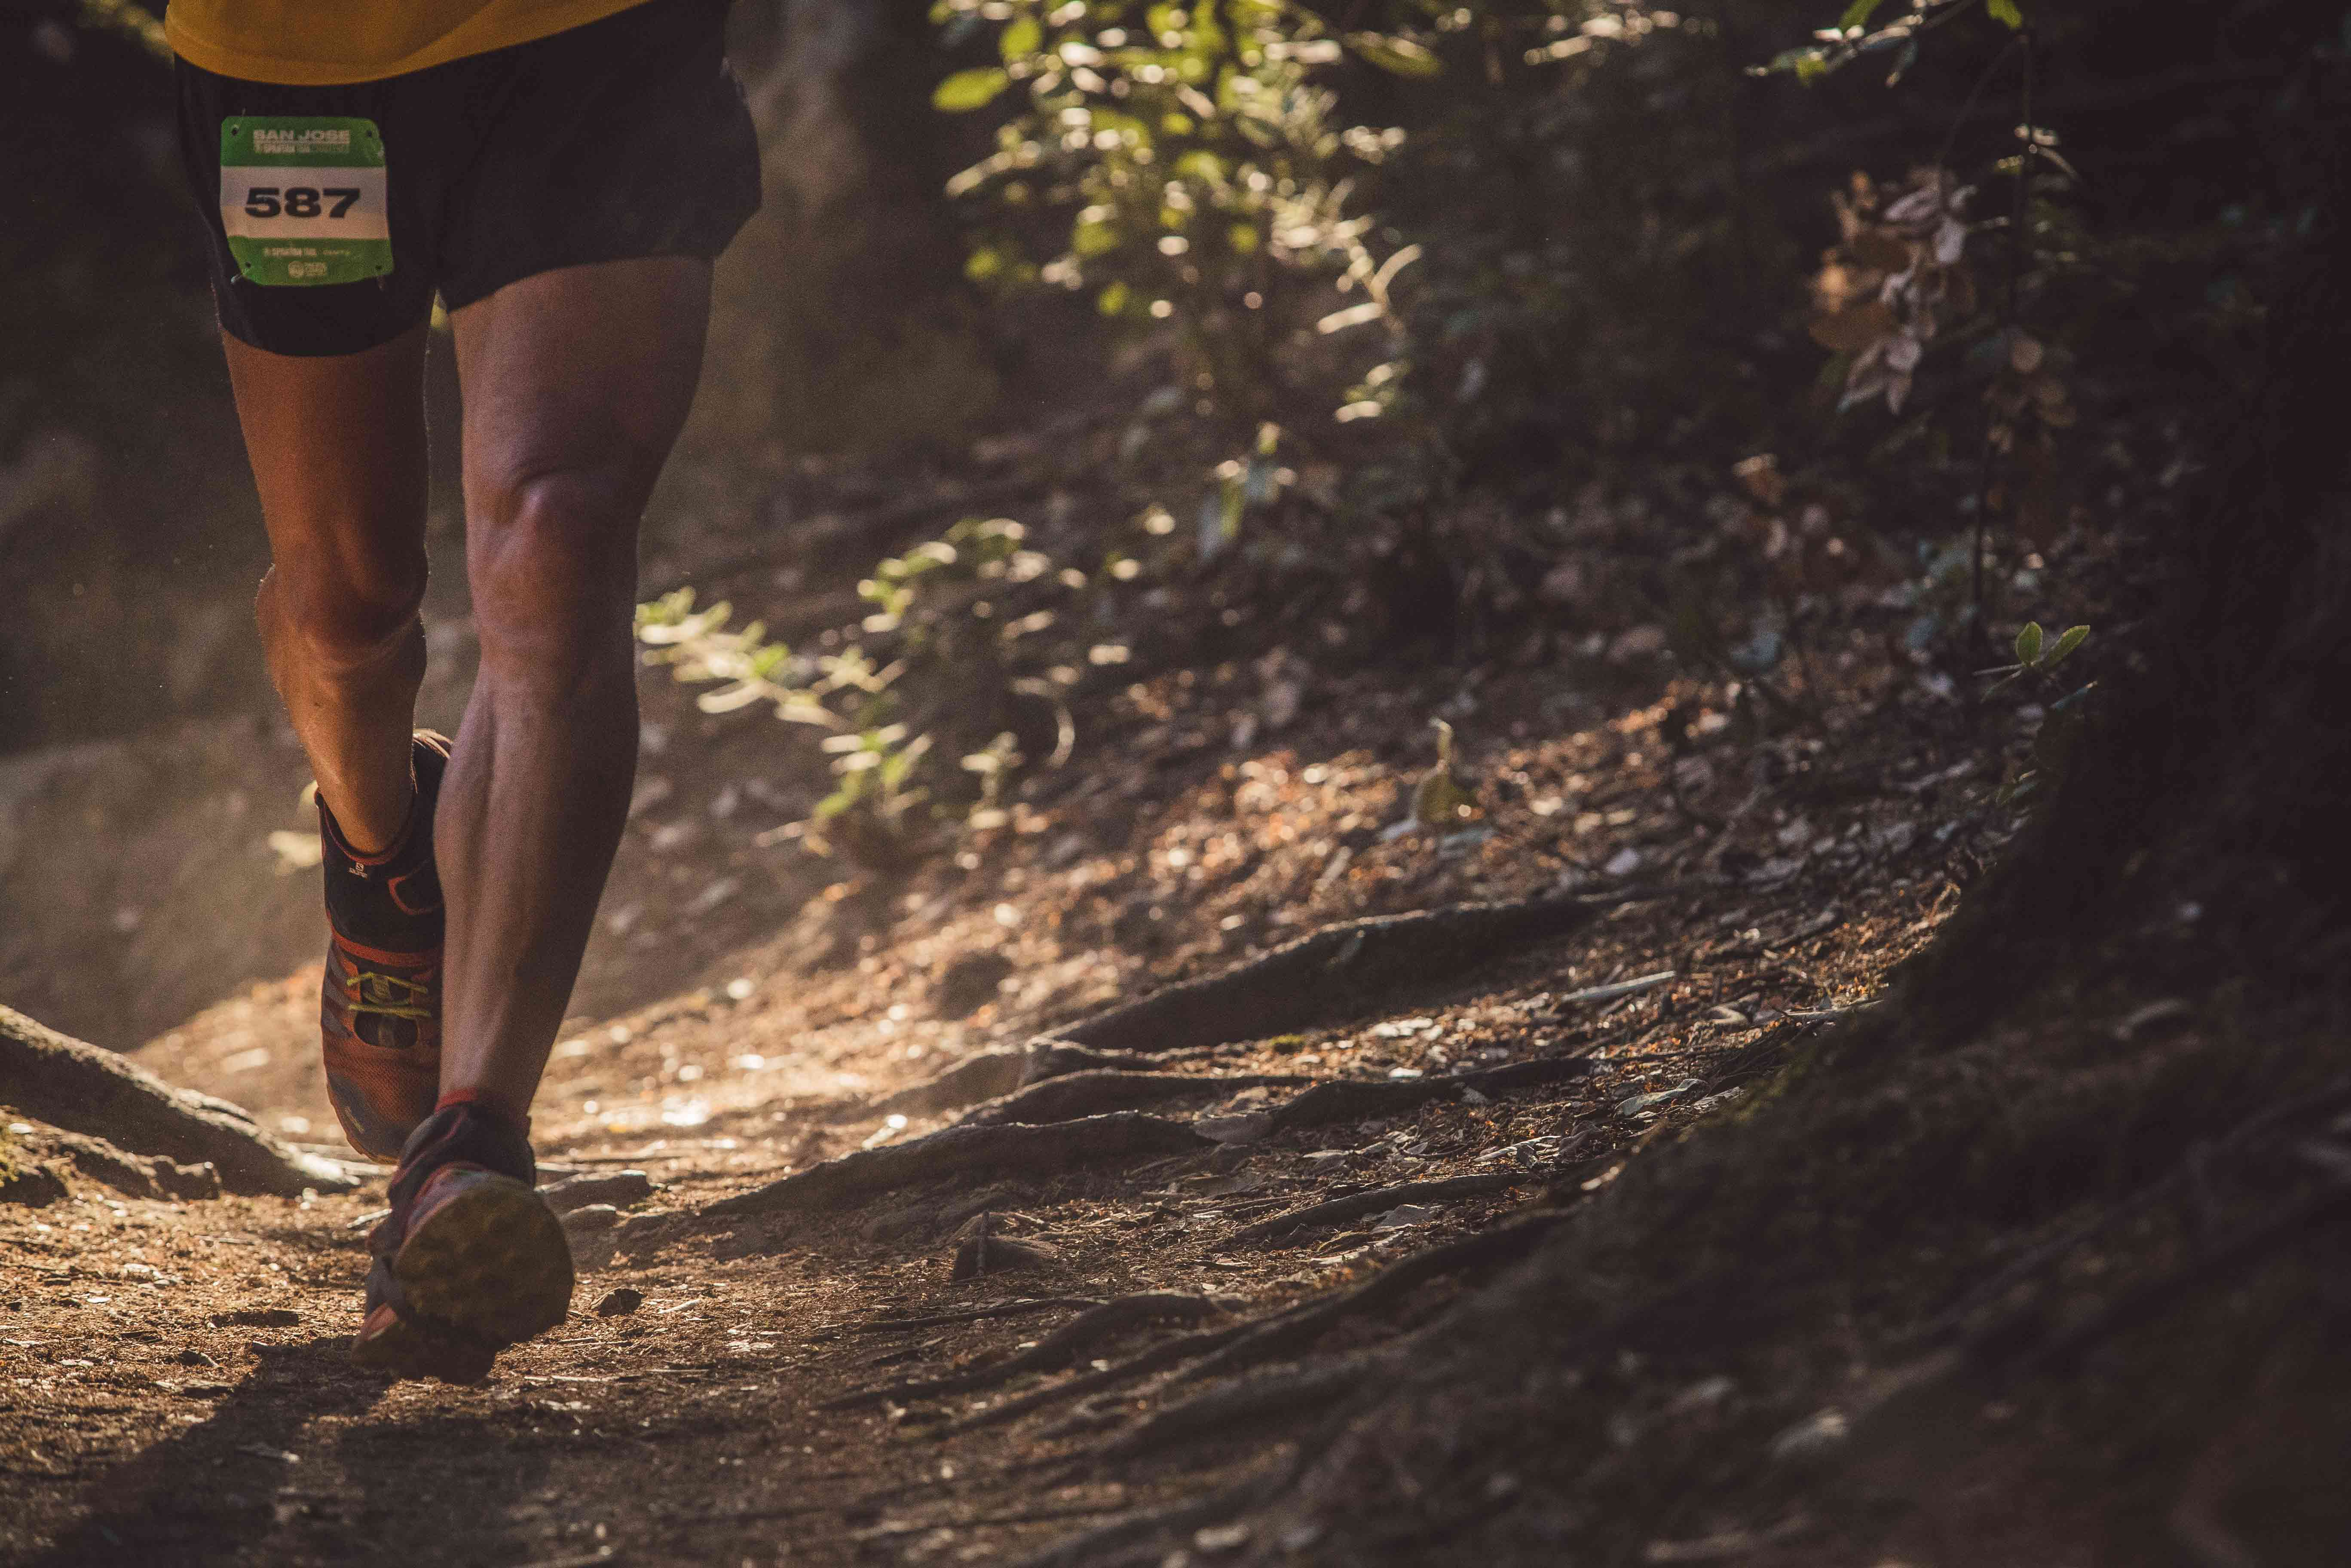 A Spartan Trail racer completes a trail run after preparing with exercises for IT band and ankle sprain issues.